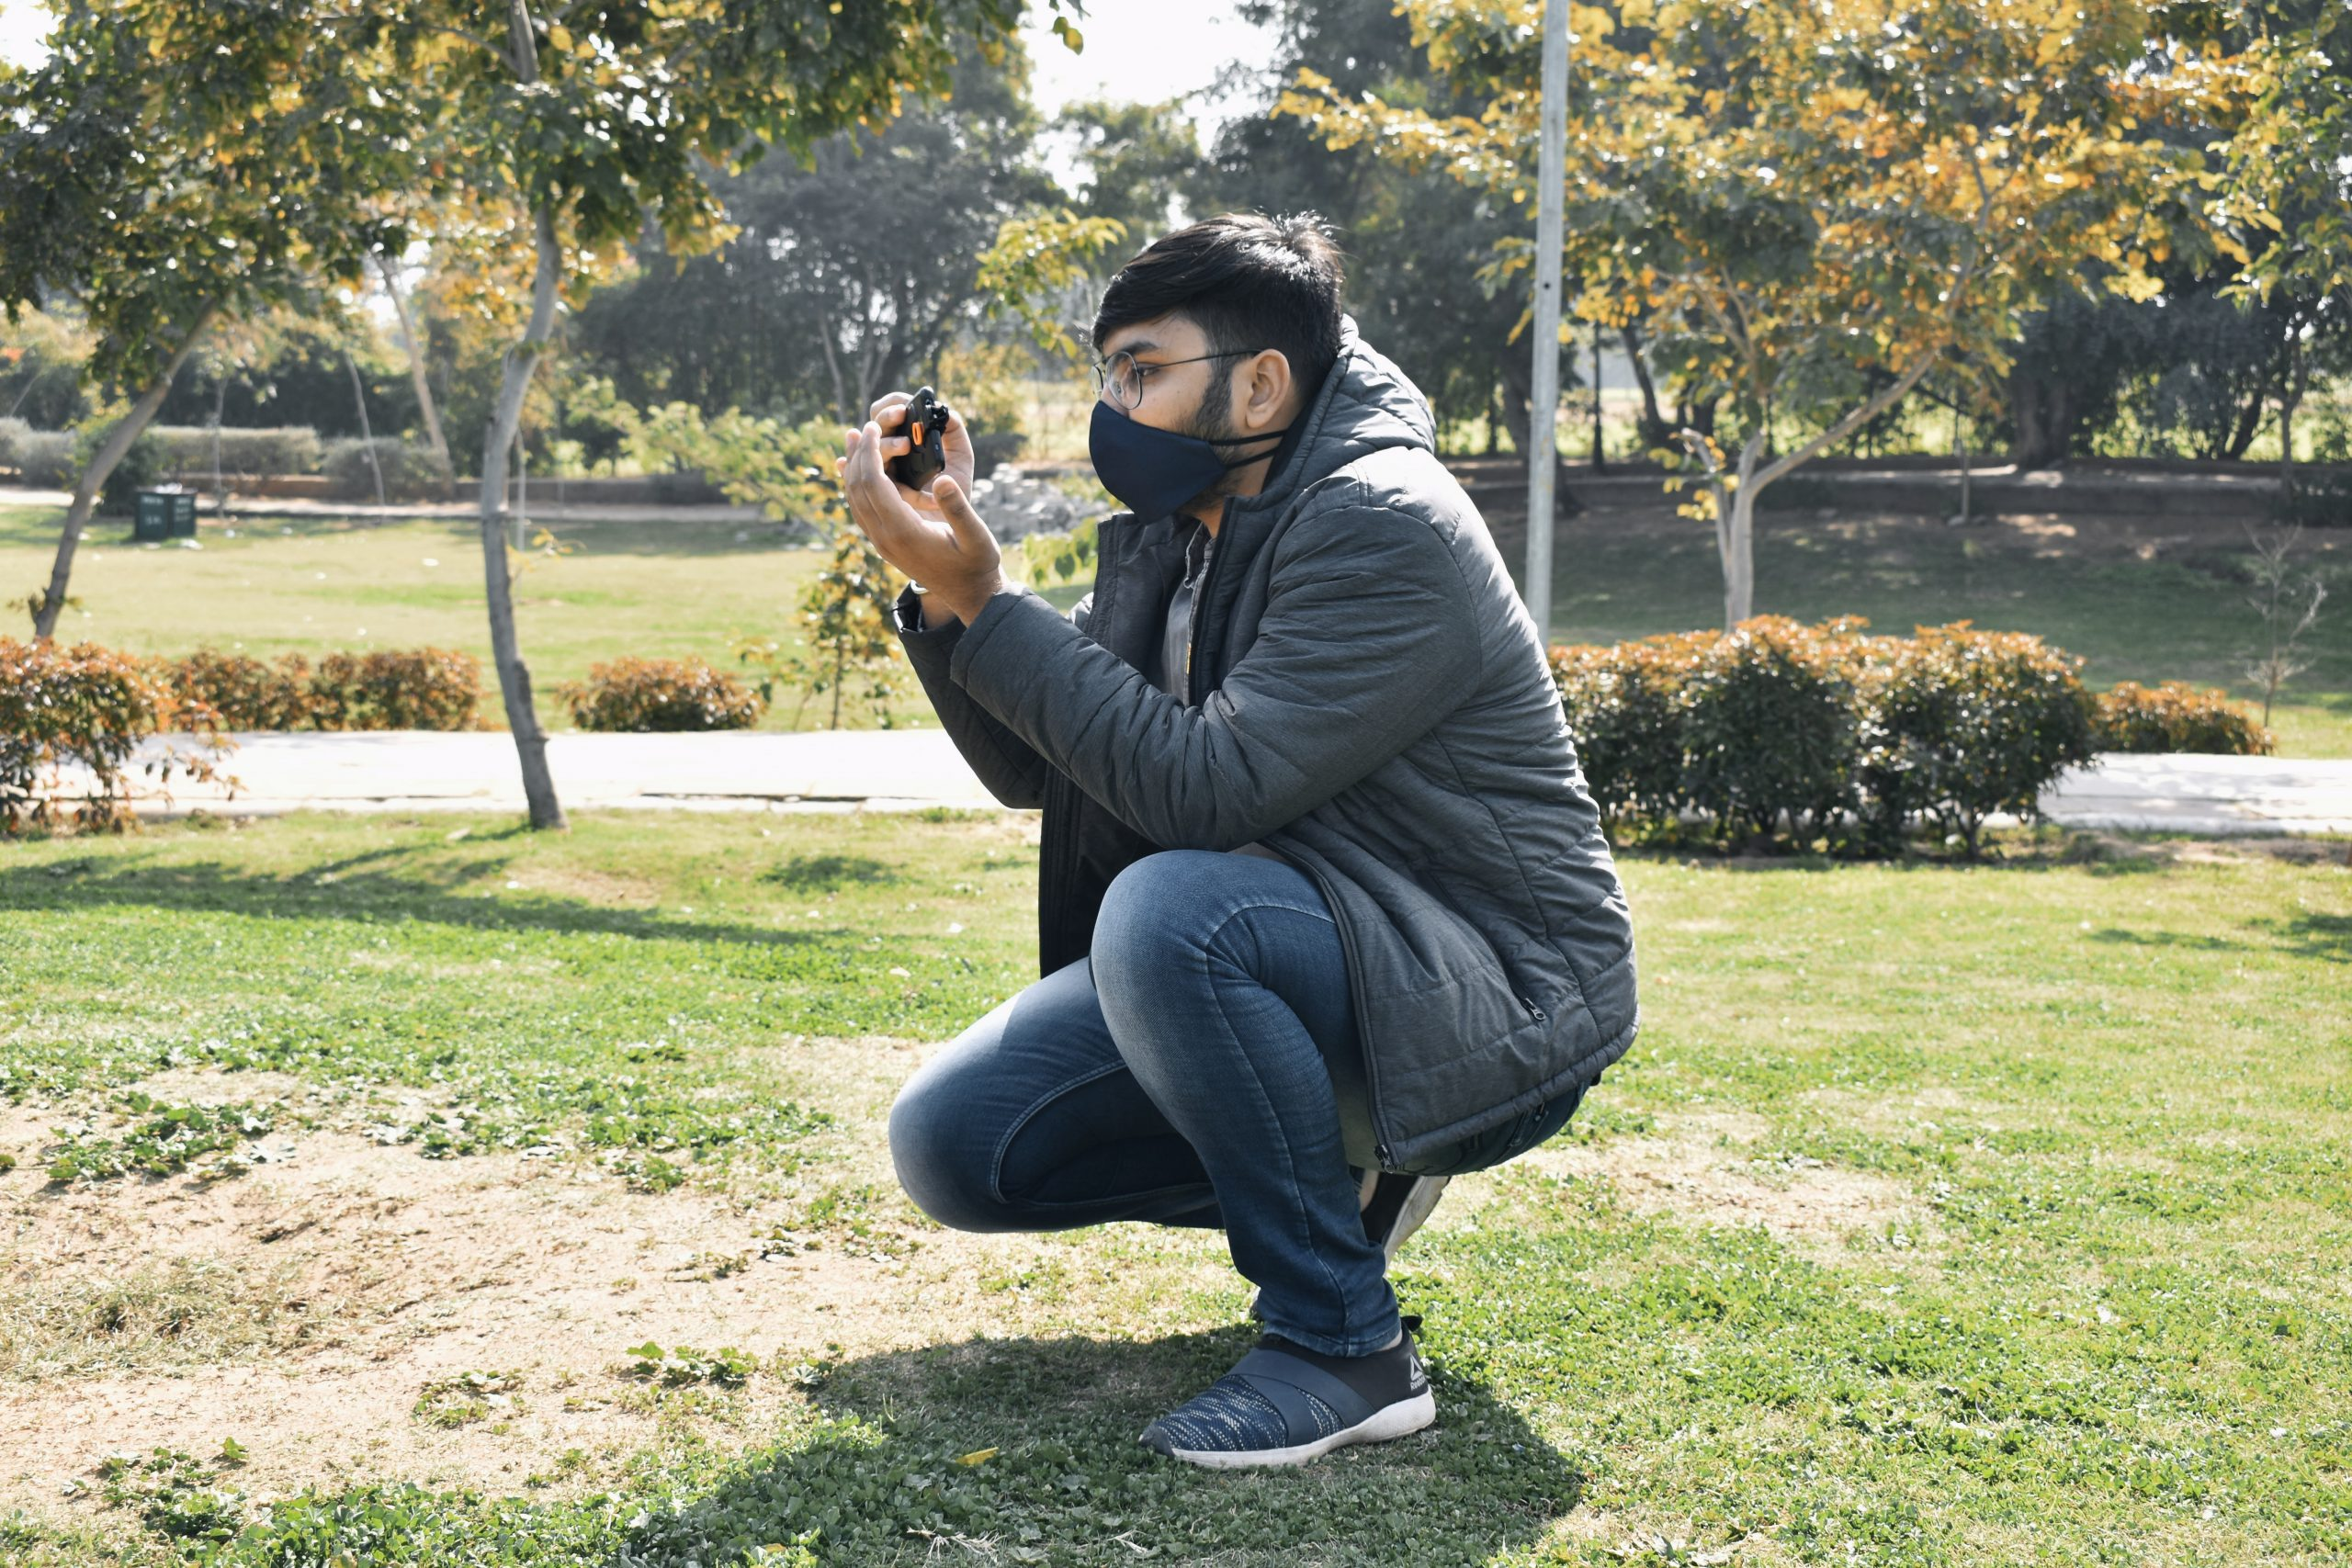 A boy taking a picture in a park